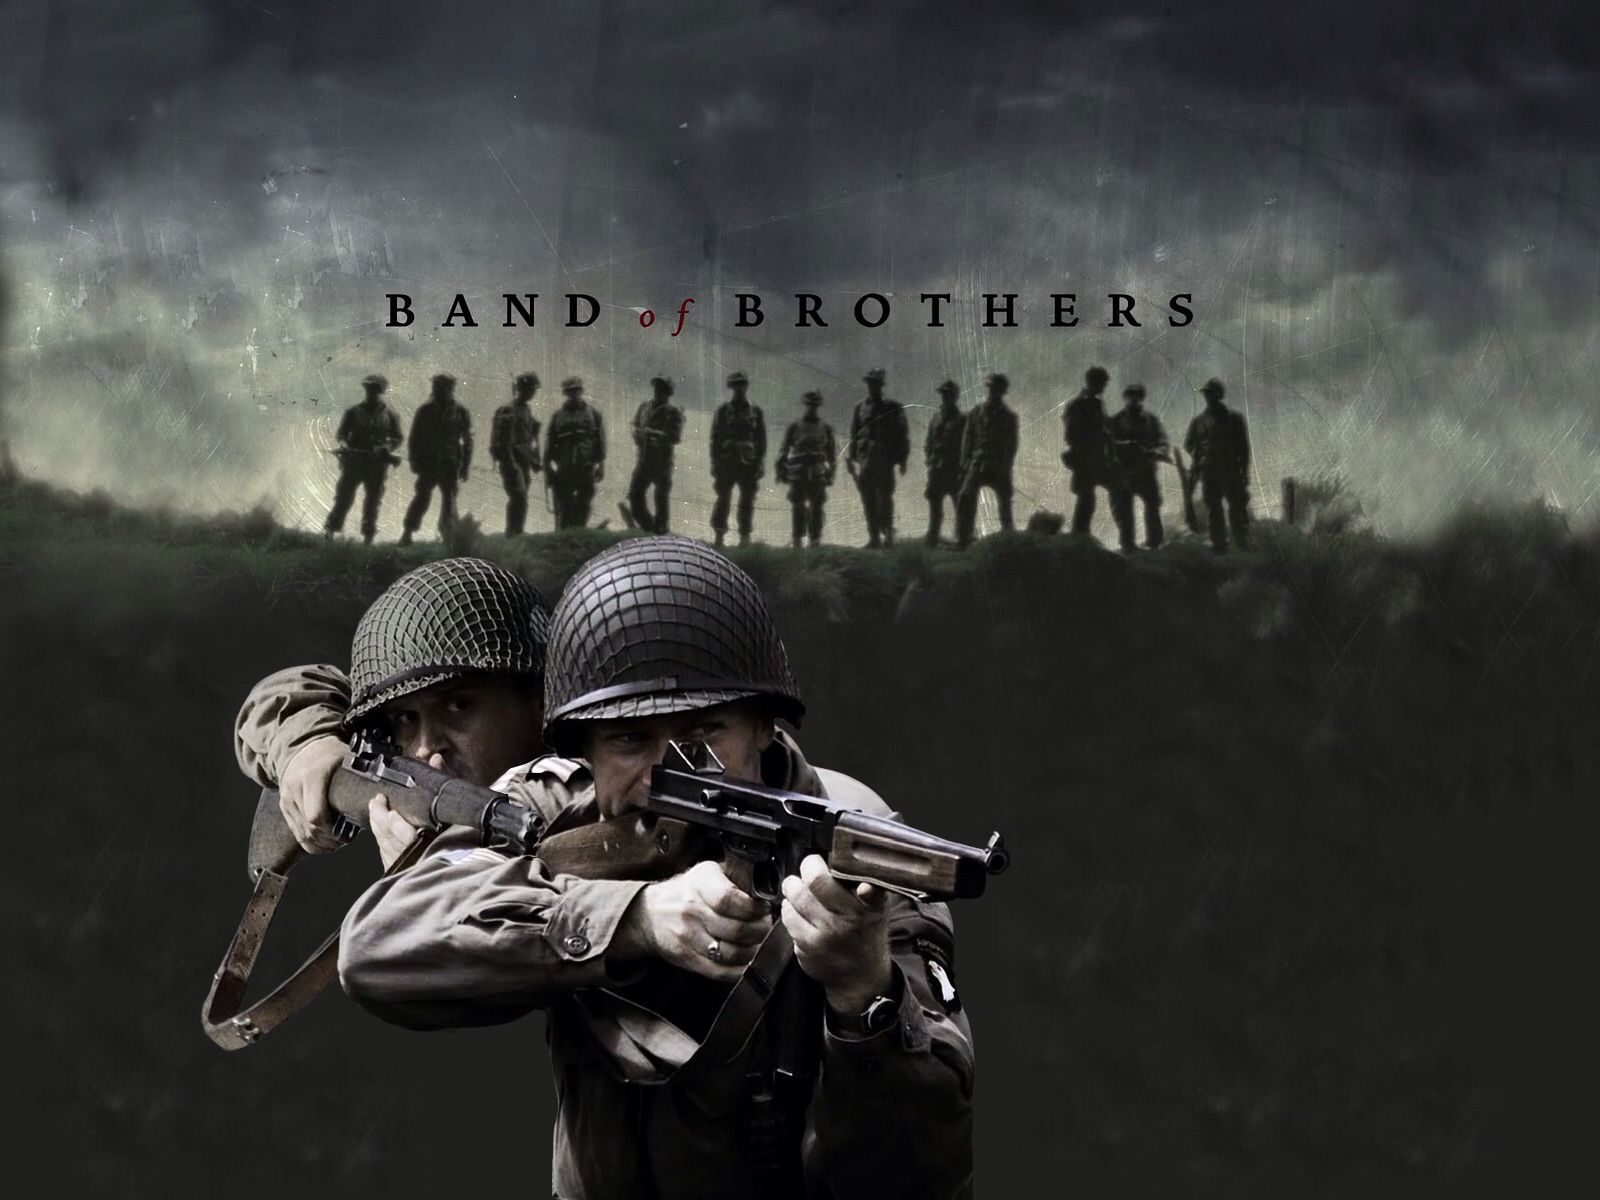 best images about band of brothers brother 17 best images about band of brothers brother harper lee and saturday night live